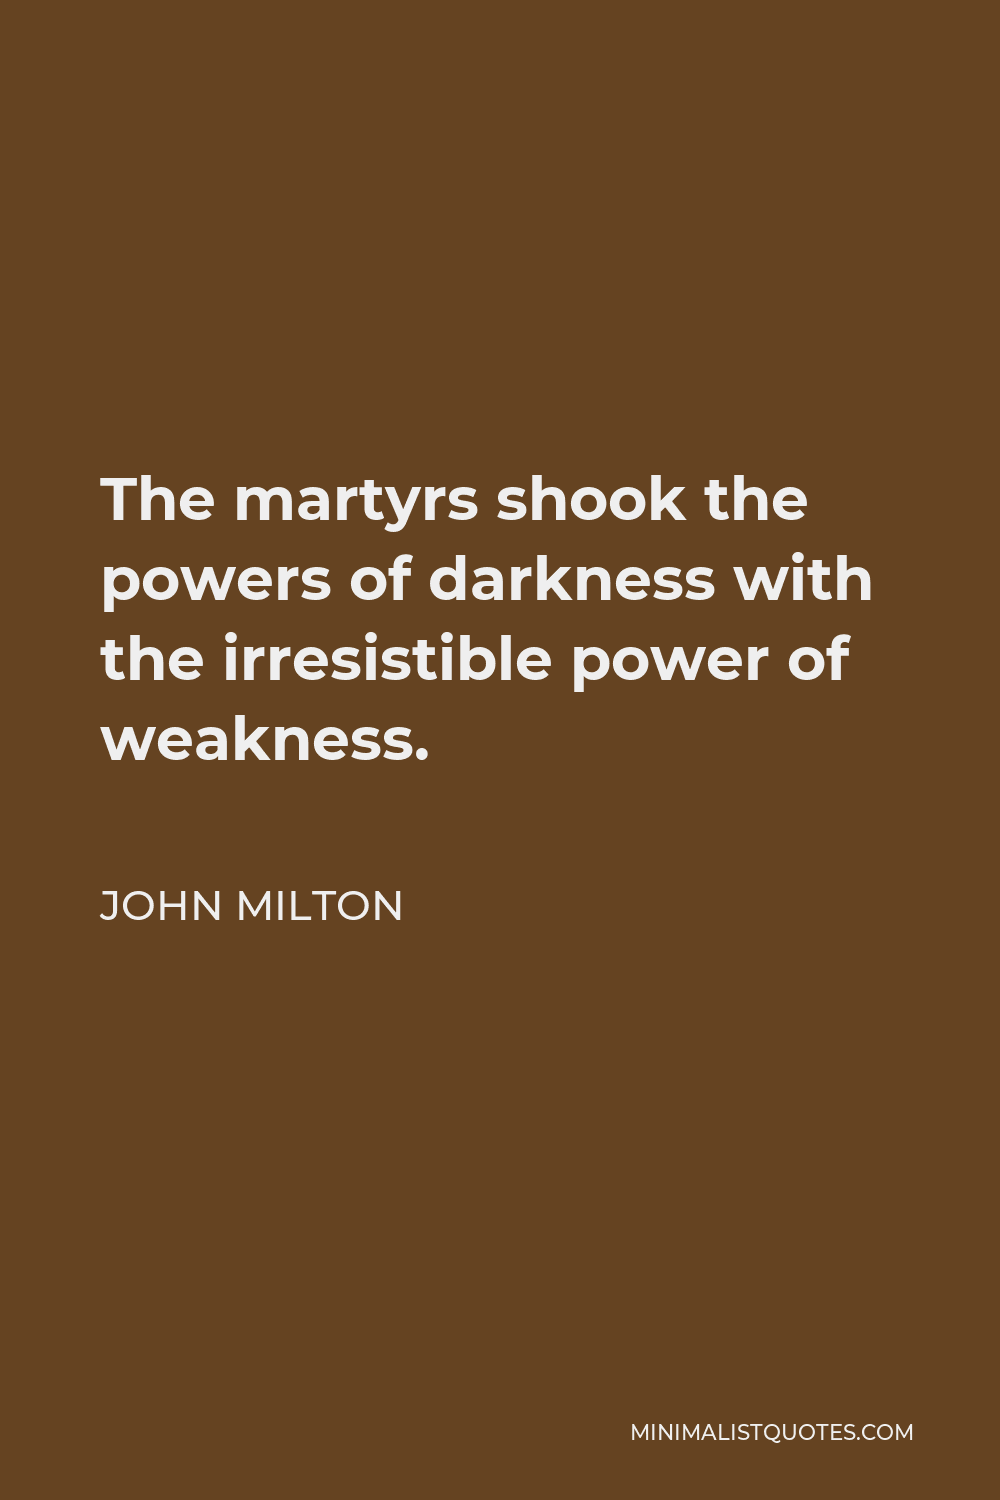 John Milton Quote - The martyrs shook the powers of darkness with the irresistible power of weakness.